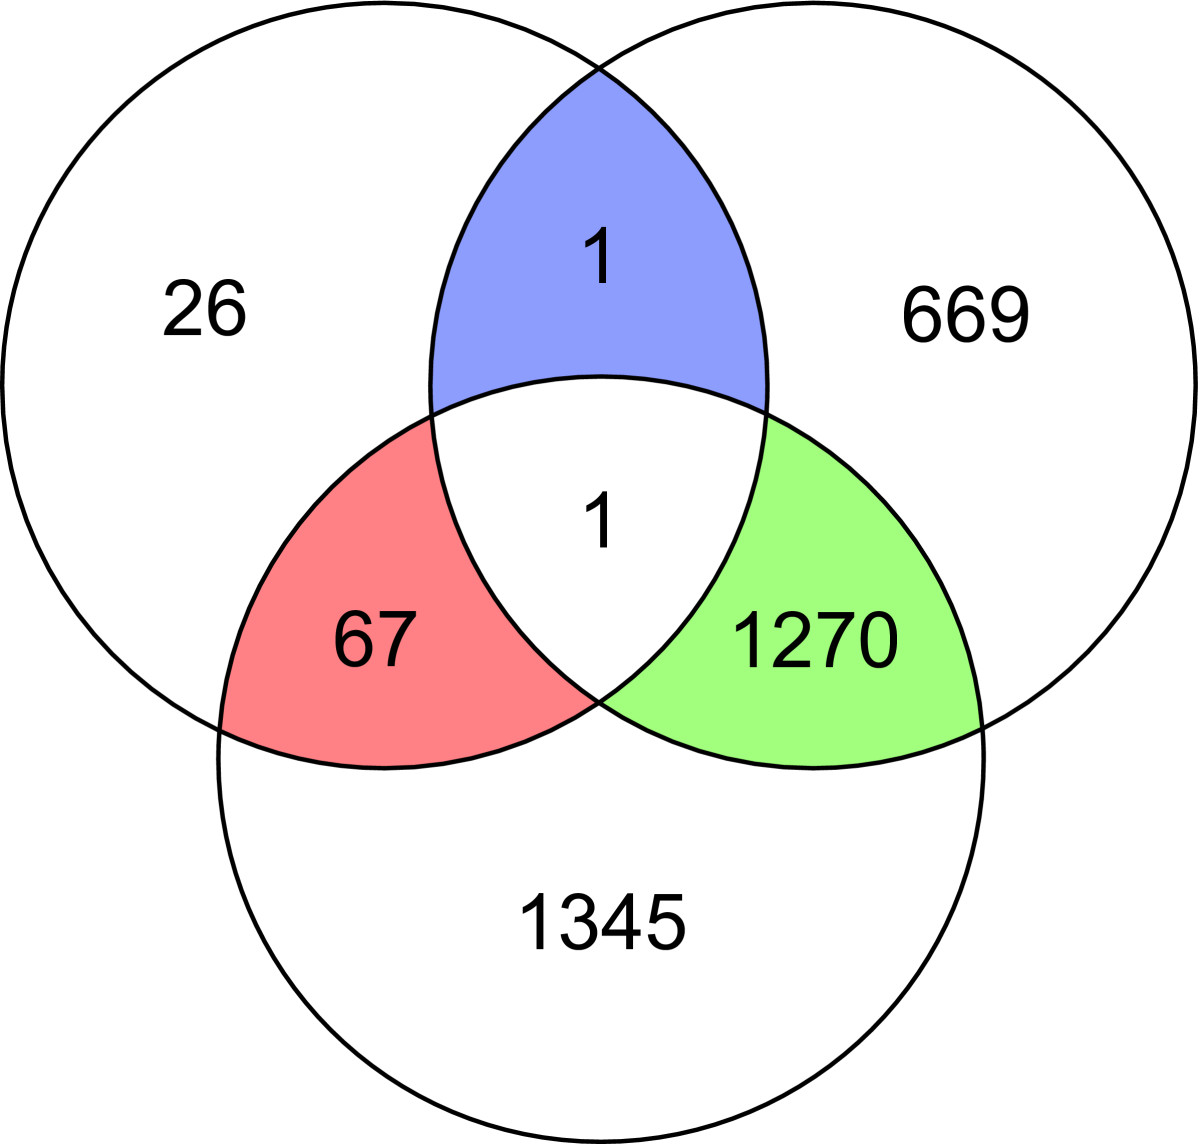 https://static-content.springer.com/image/art%3A10.1186%2F1755-8794-4-66/MediaObjects/12920_2011_Article_262_Fig1_HTML.jpg